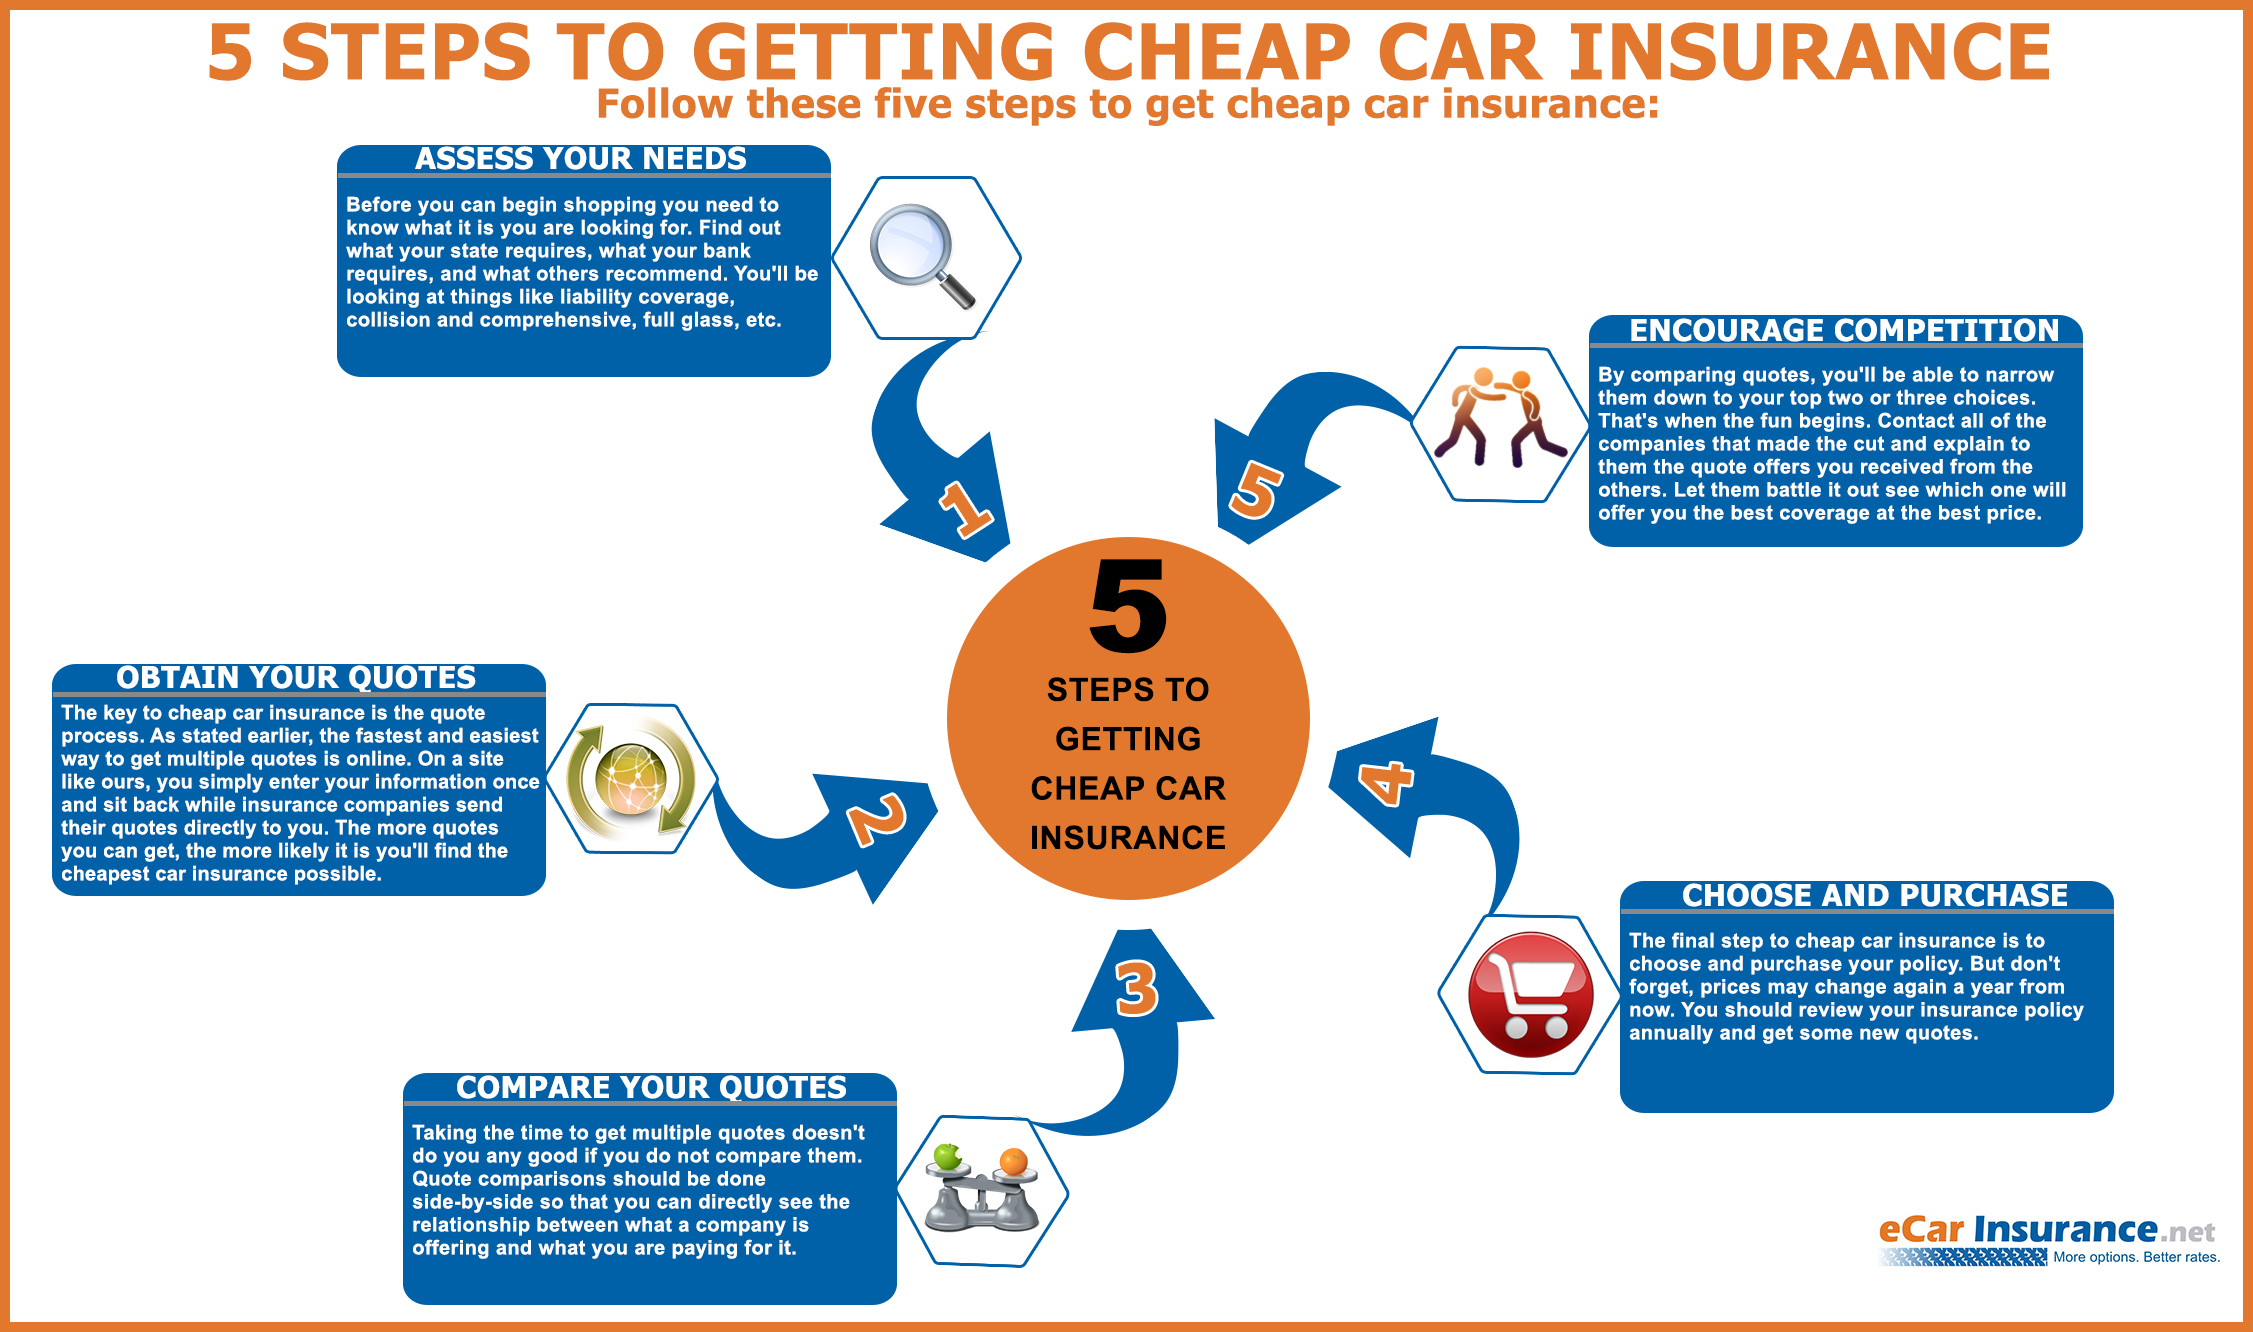 Car Price Quotes 5 Steps To Getting Cheap Car Insurance  Visual.ly